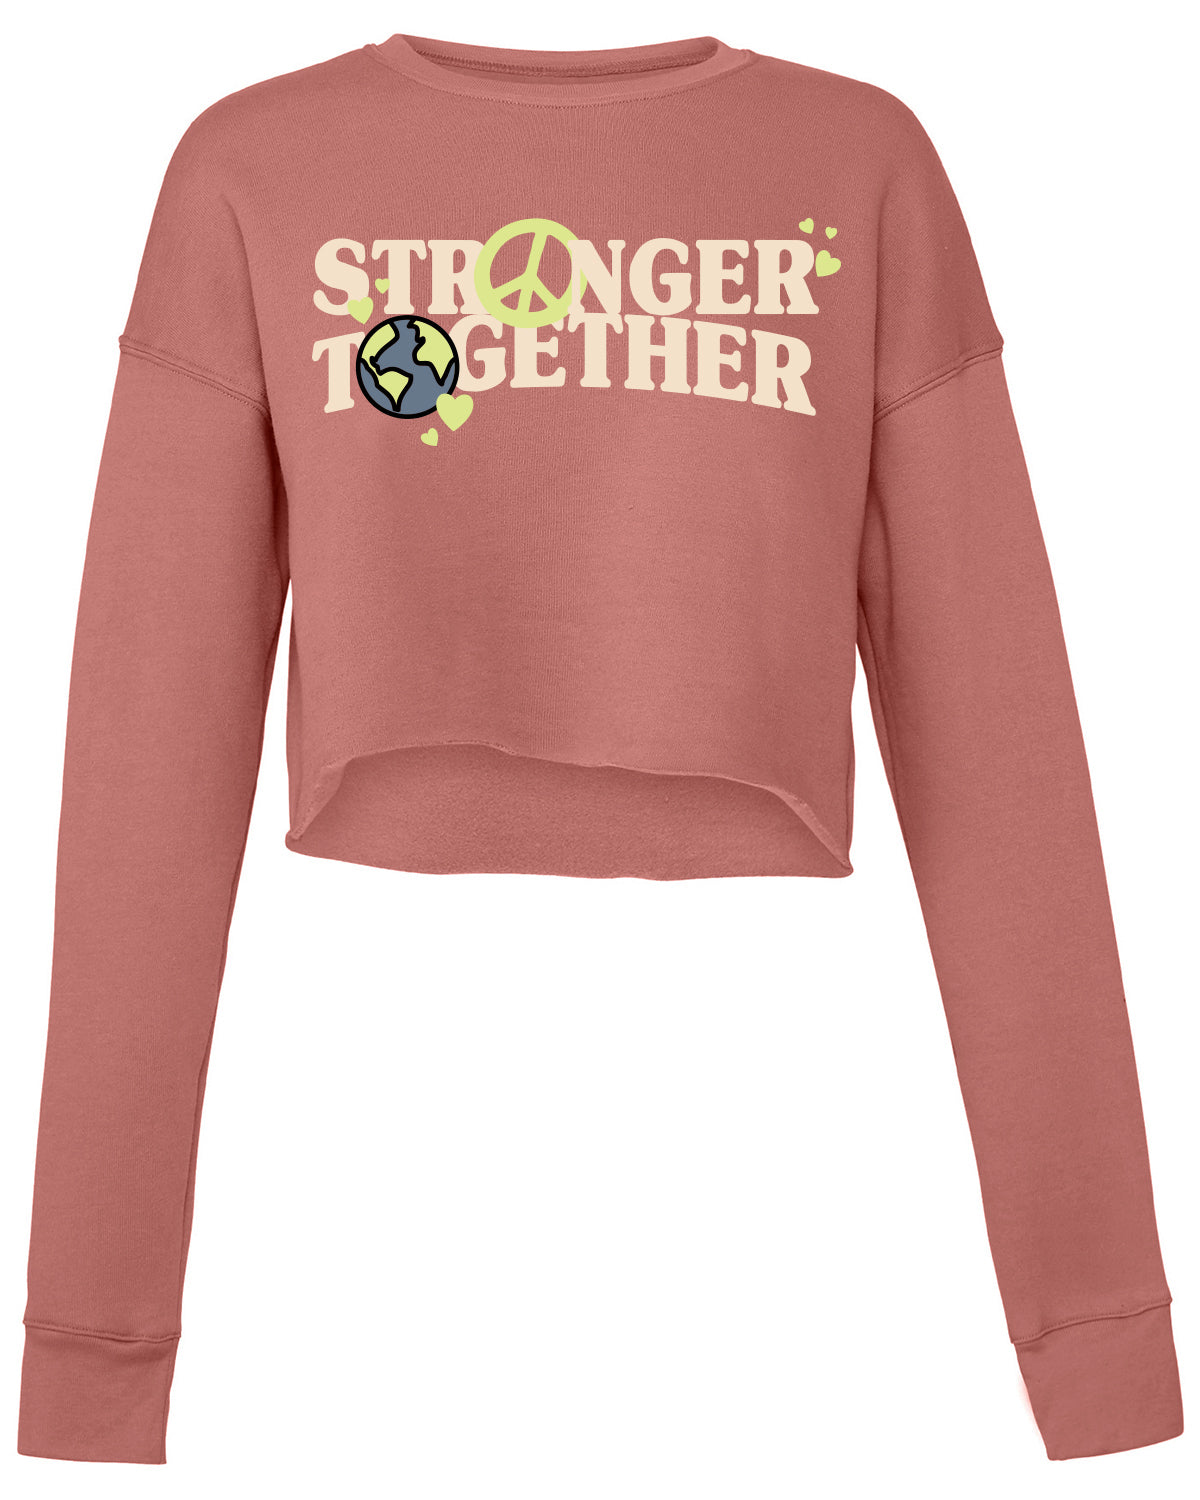 Stronger Together Sweater